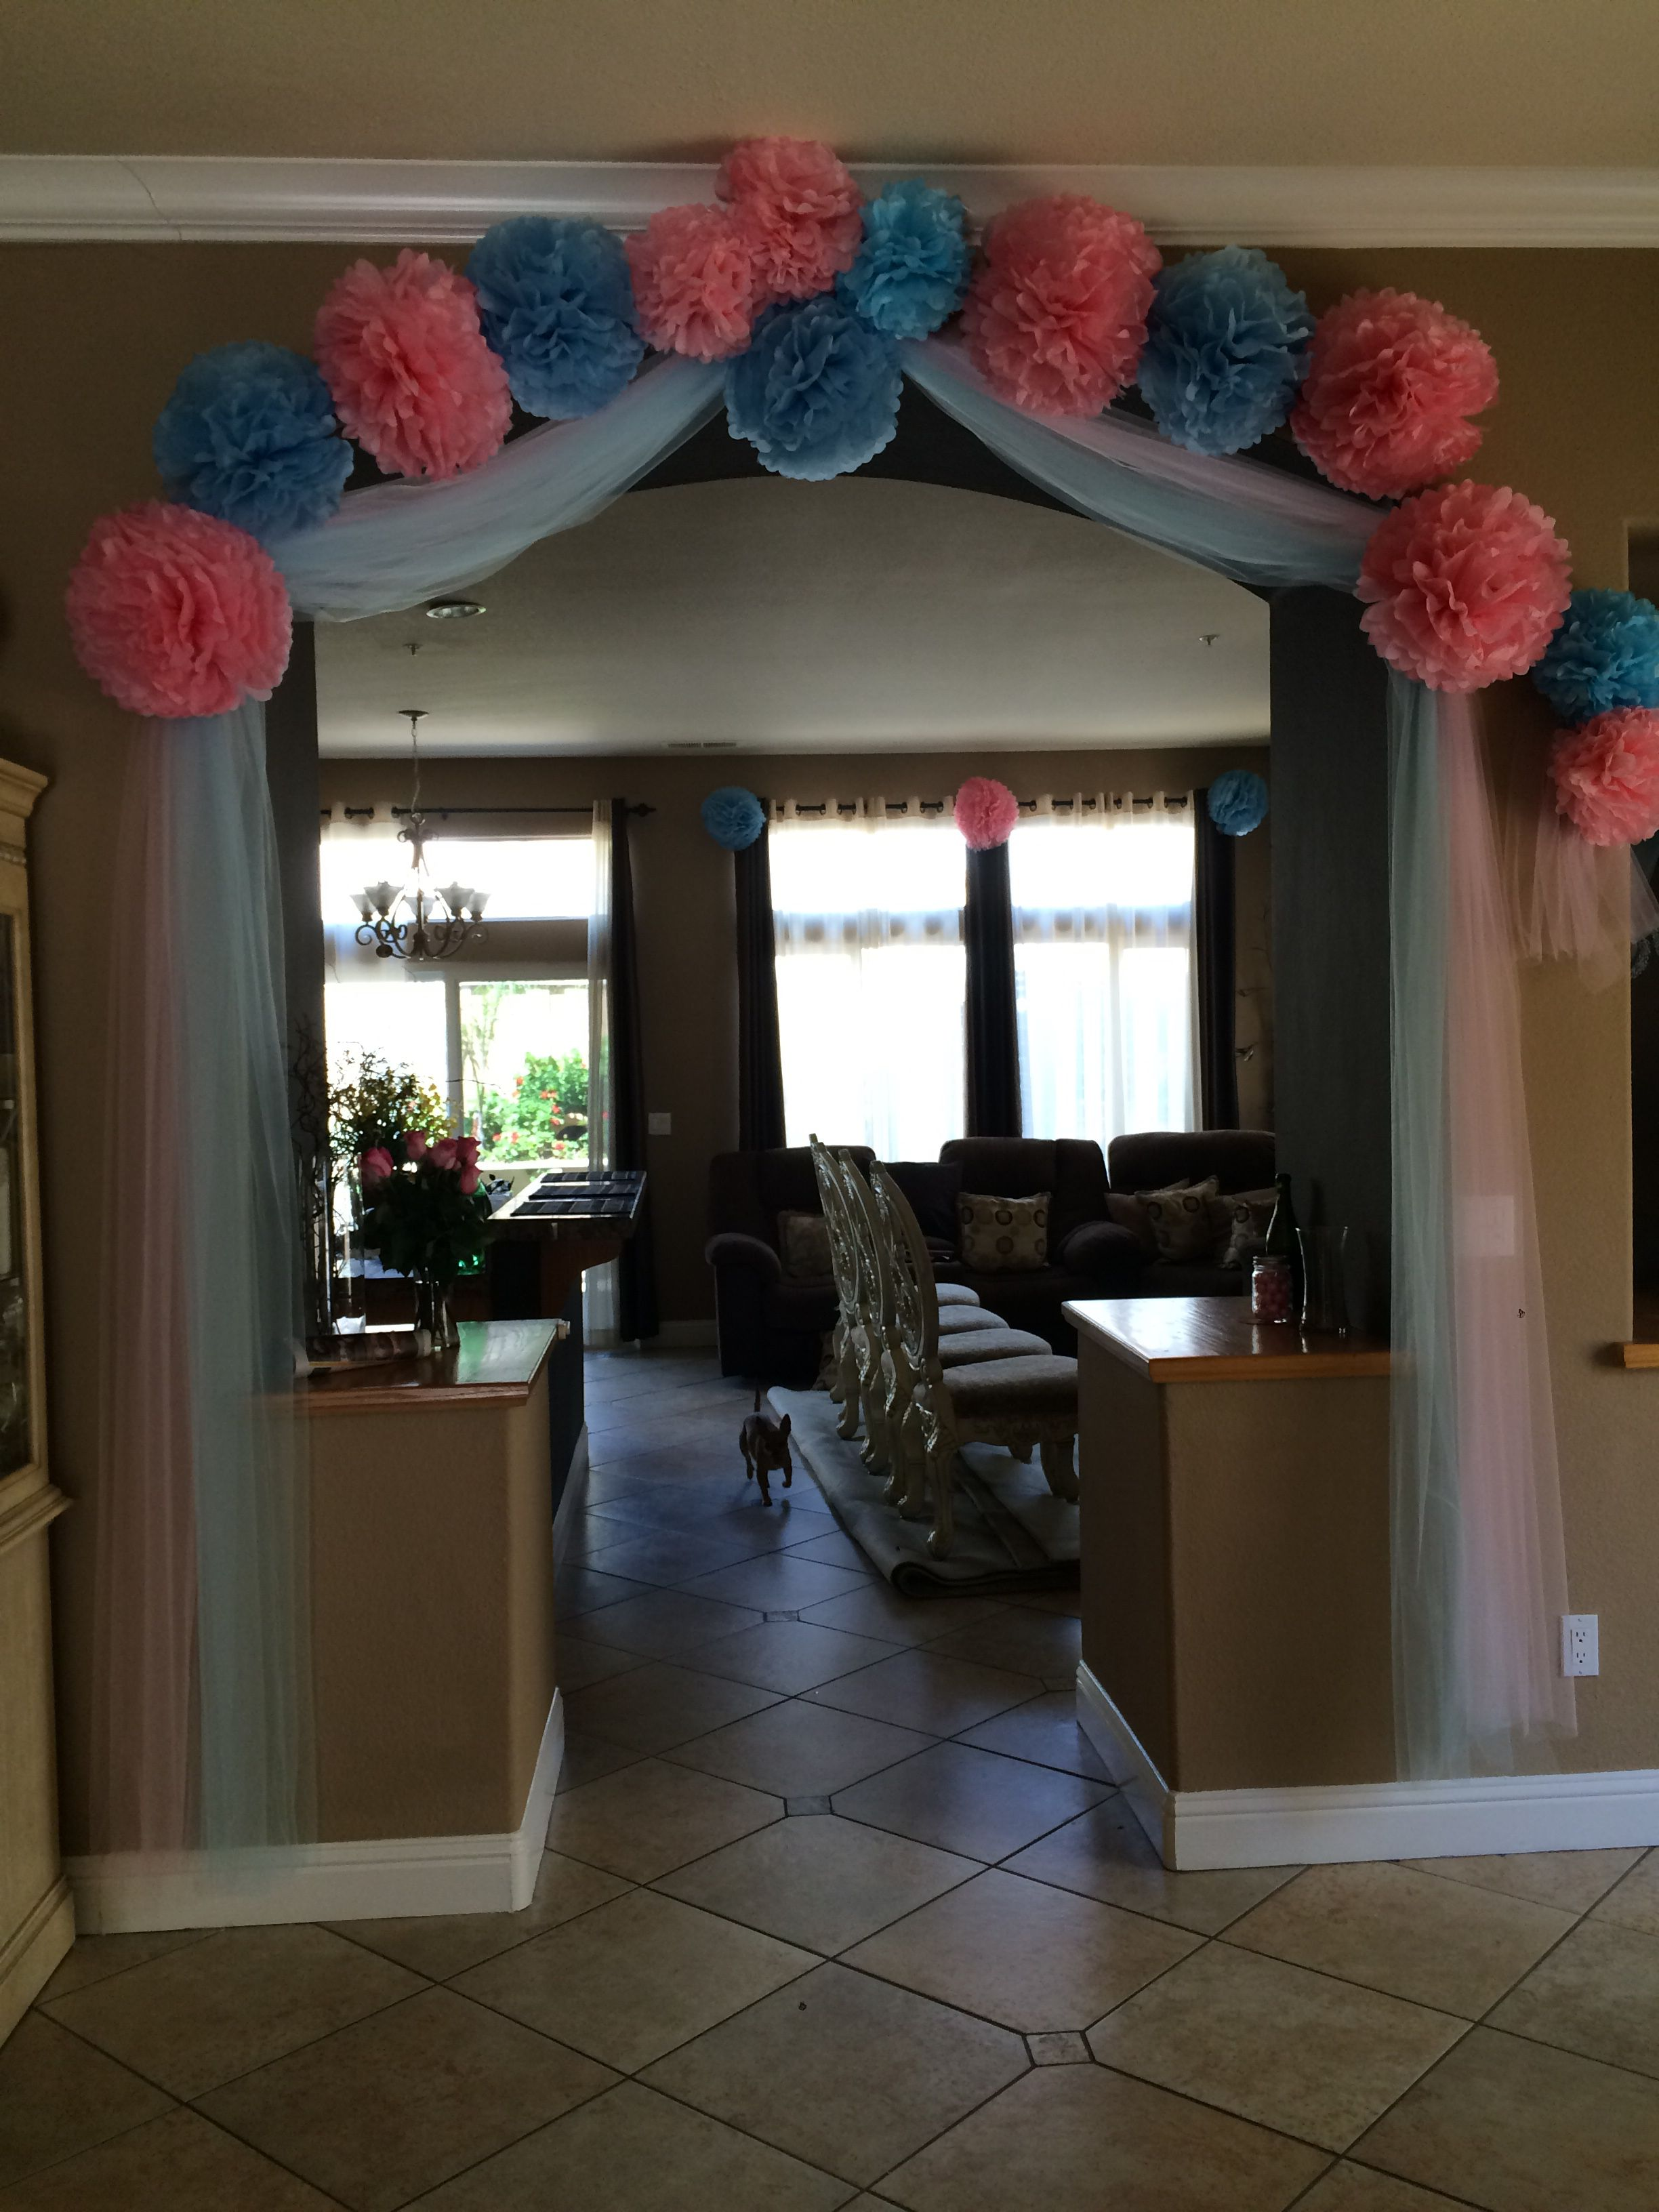 Gender reveal party ideas also best images in rh br pinterest